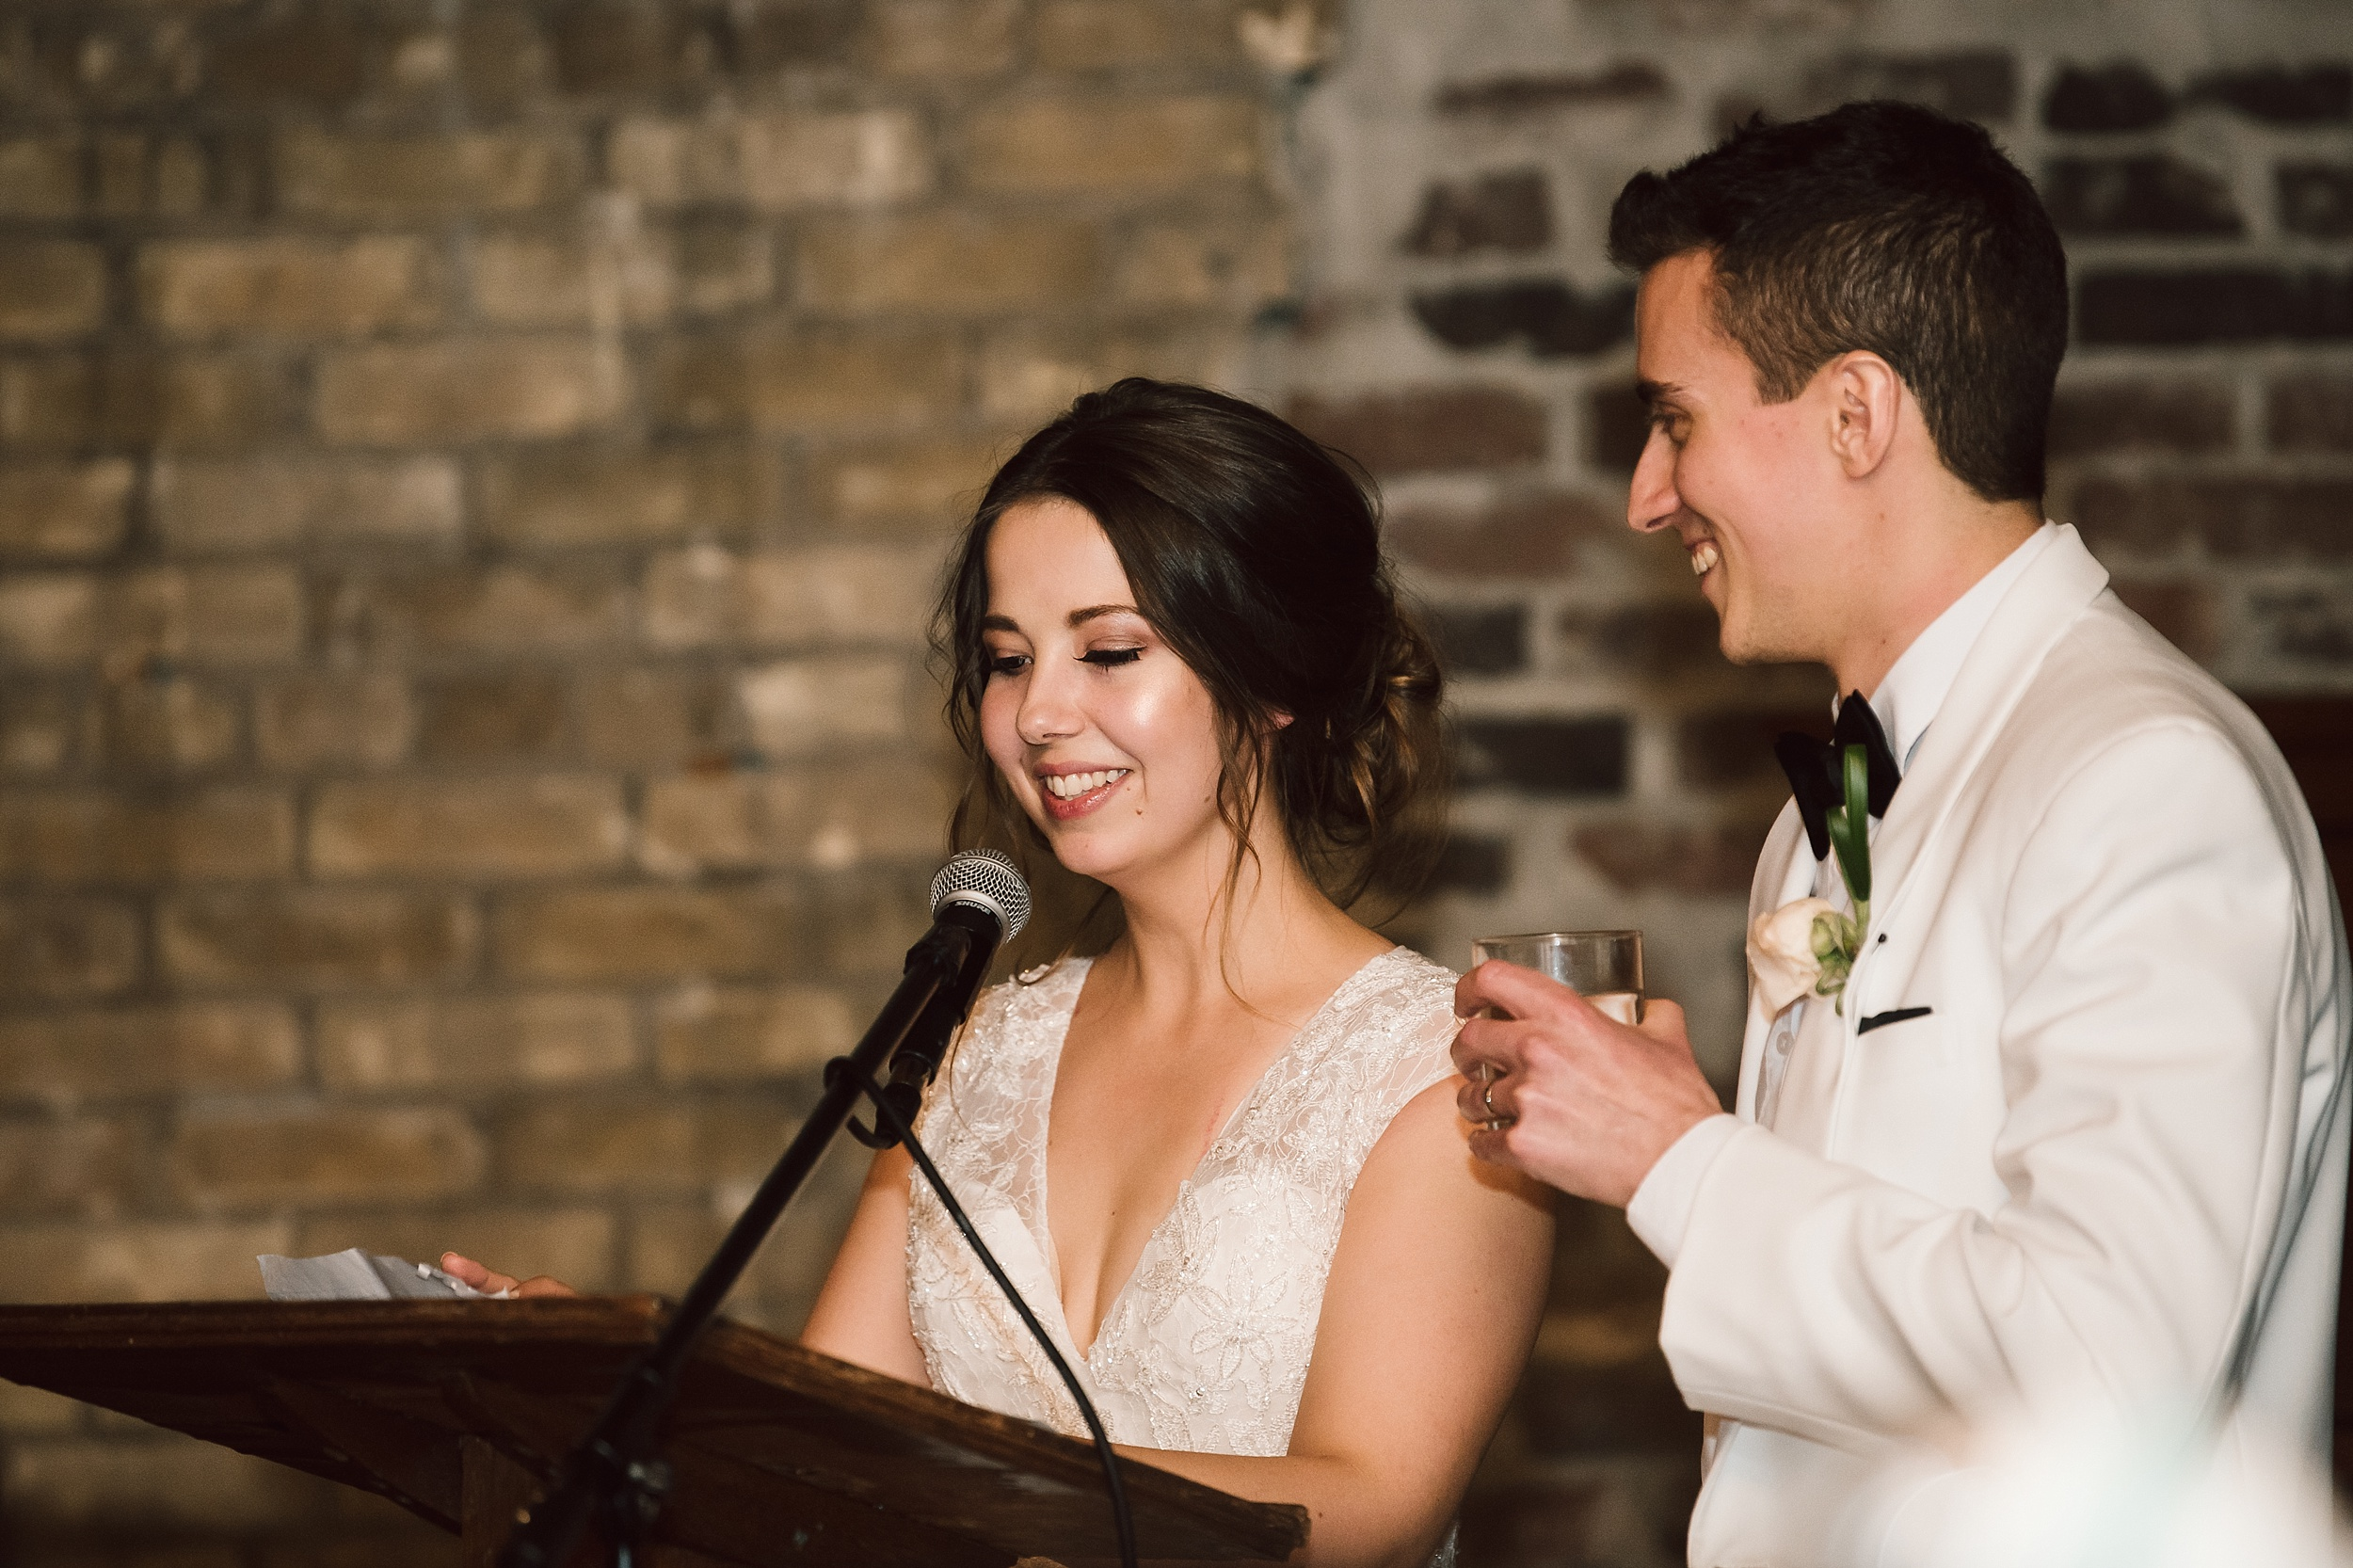 Jam_Factory_Wedding_Toronto_Winter_Wedding_Photographer_0082.jpg